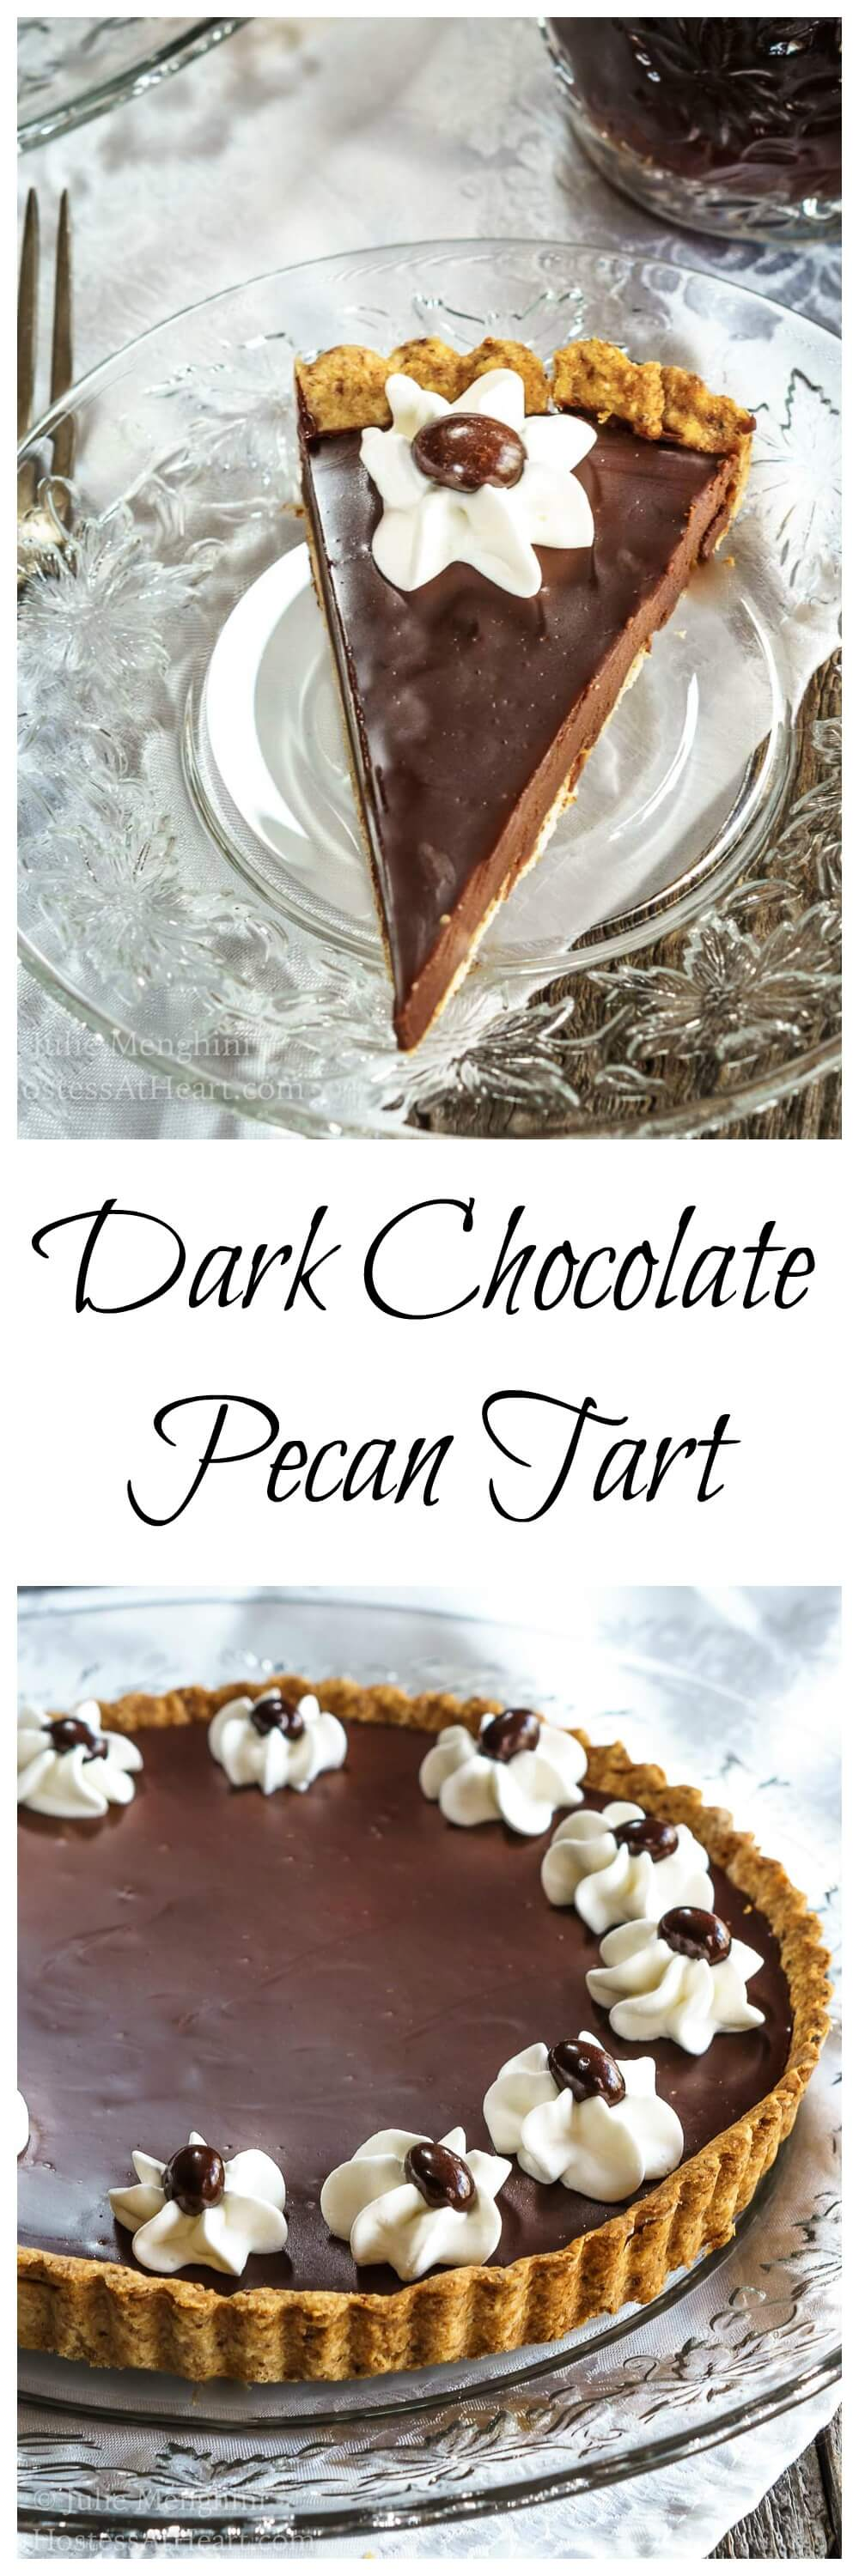 This Dark Chocolate Pecan Tart is fancy enough to impress but quick and easy enough to make any time for that very special someone. #Recipe #homemade #Chocolatedessert  | Chocolate Dessert Recipes | Tart Recipe Ideas